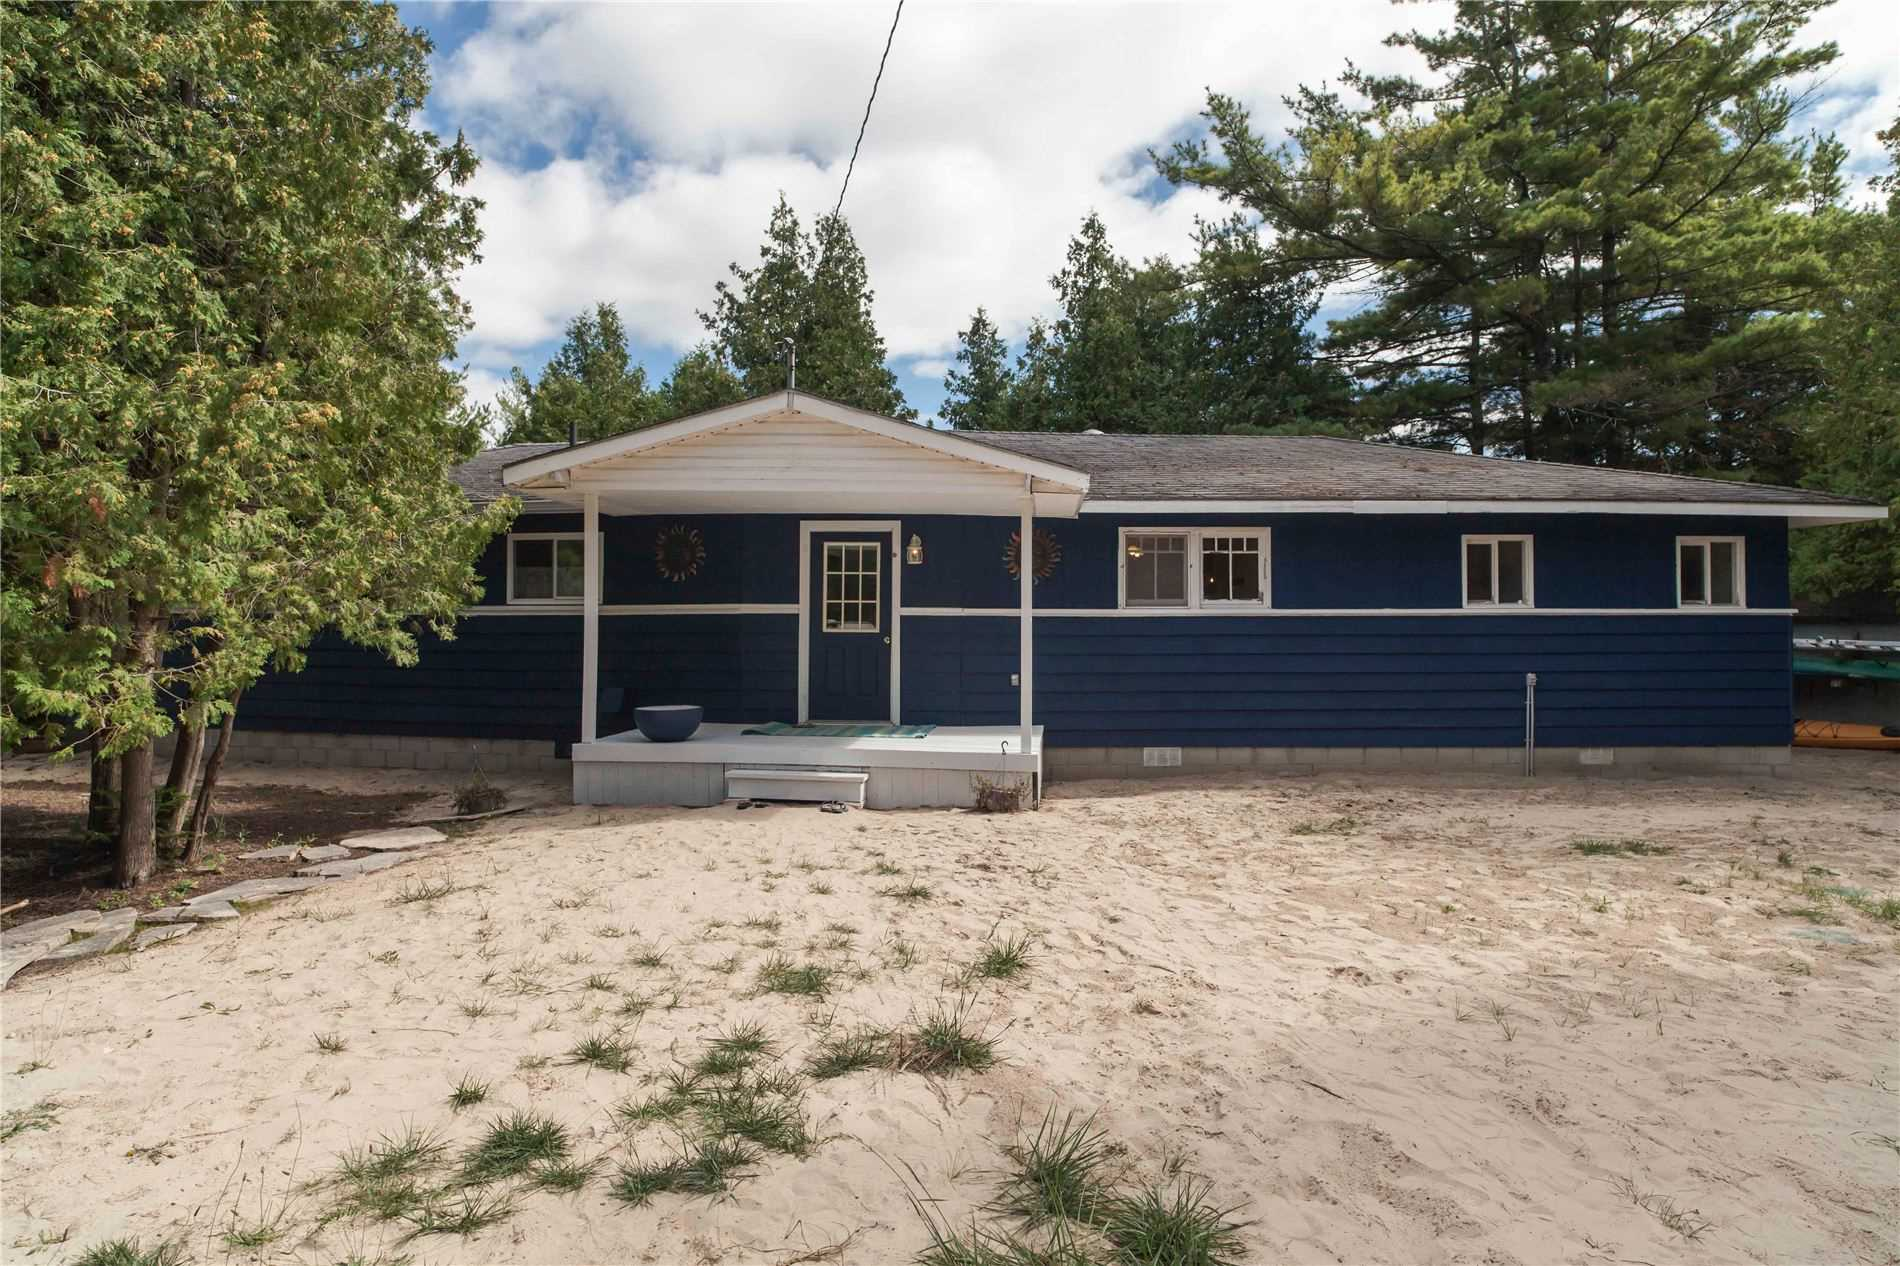 Detached house For Sale In First Nations - 43 Sog-Je-Wa-Sa Dr, First Nations, Ontario, Canada N0H 2G0 , 5 Bedrooms Bedrooms, ,2 BathroomsBathrooms,Detached,For Sale,Sog-Je-Wa-Sa